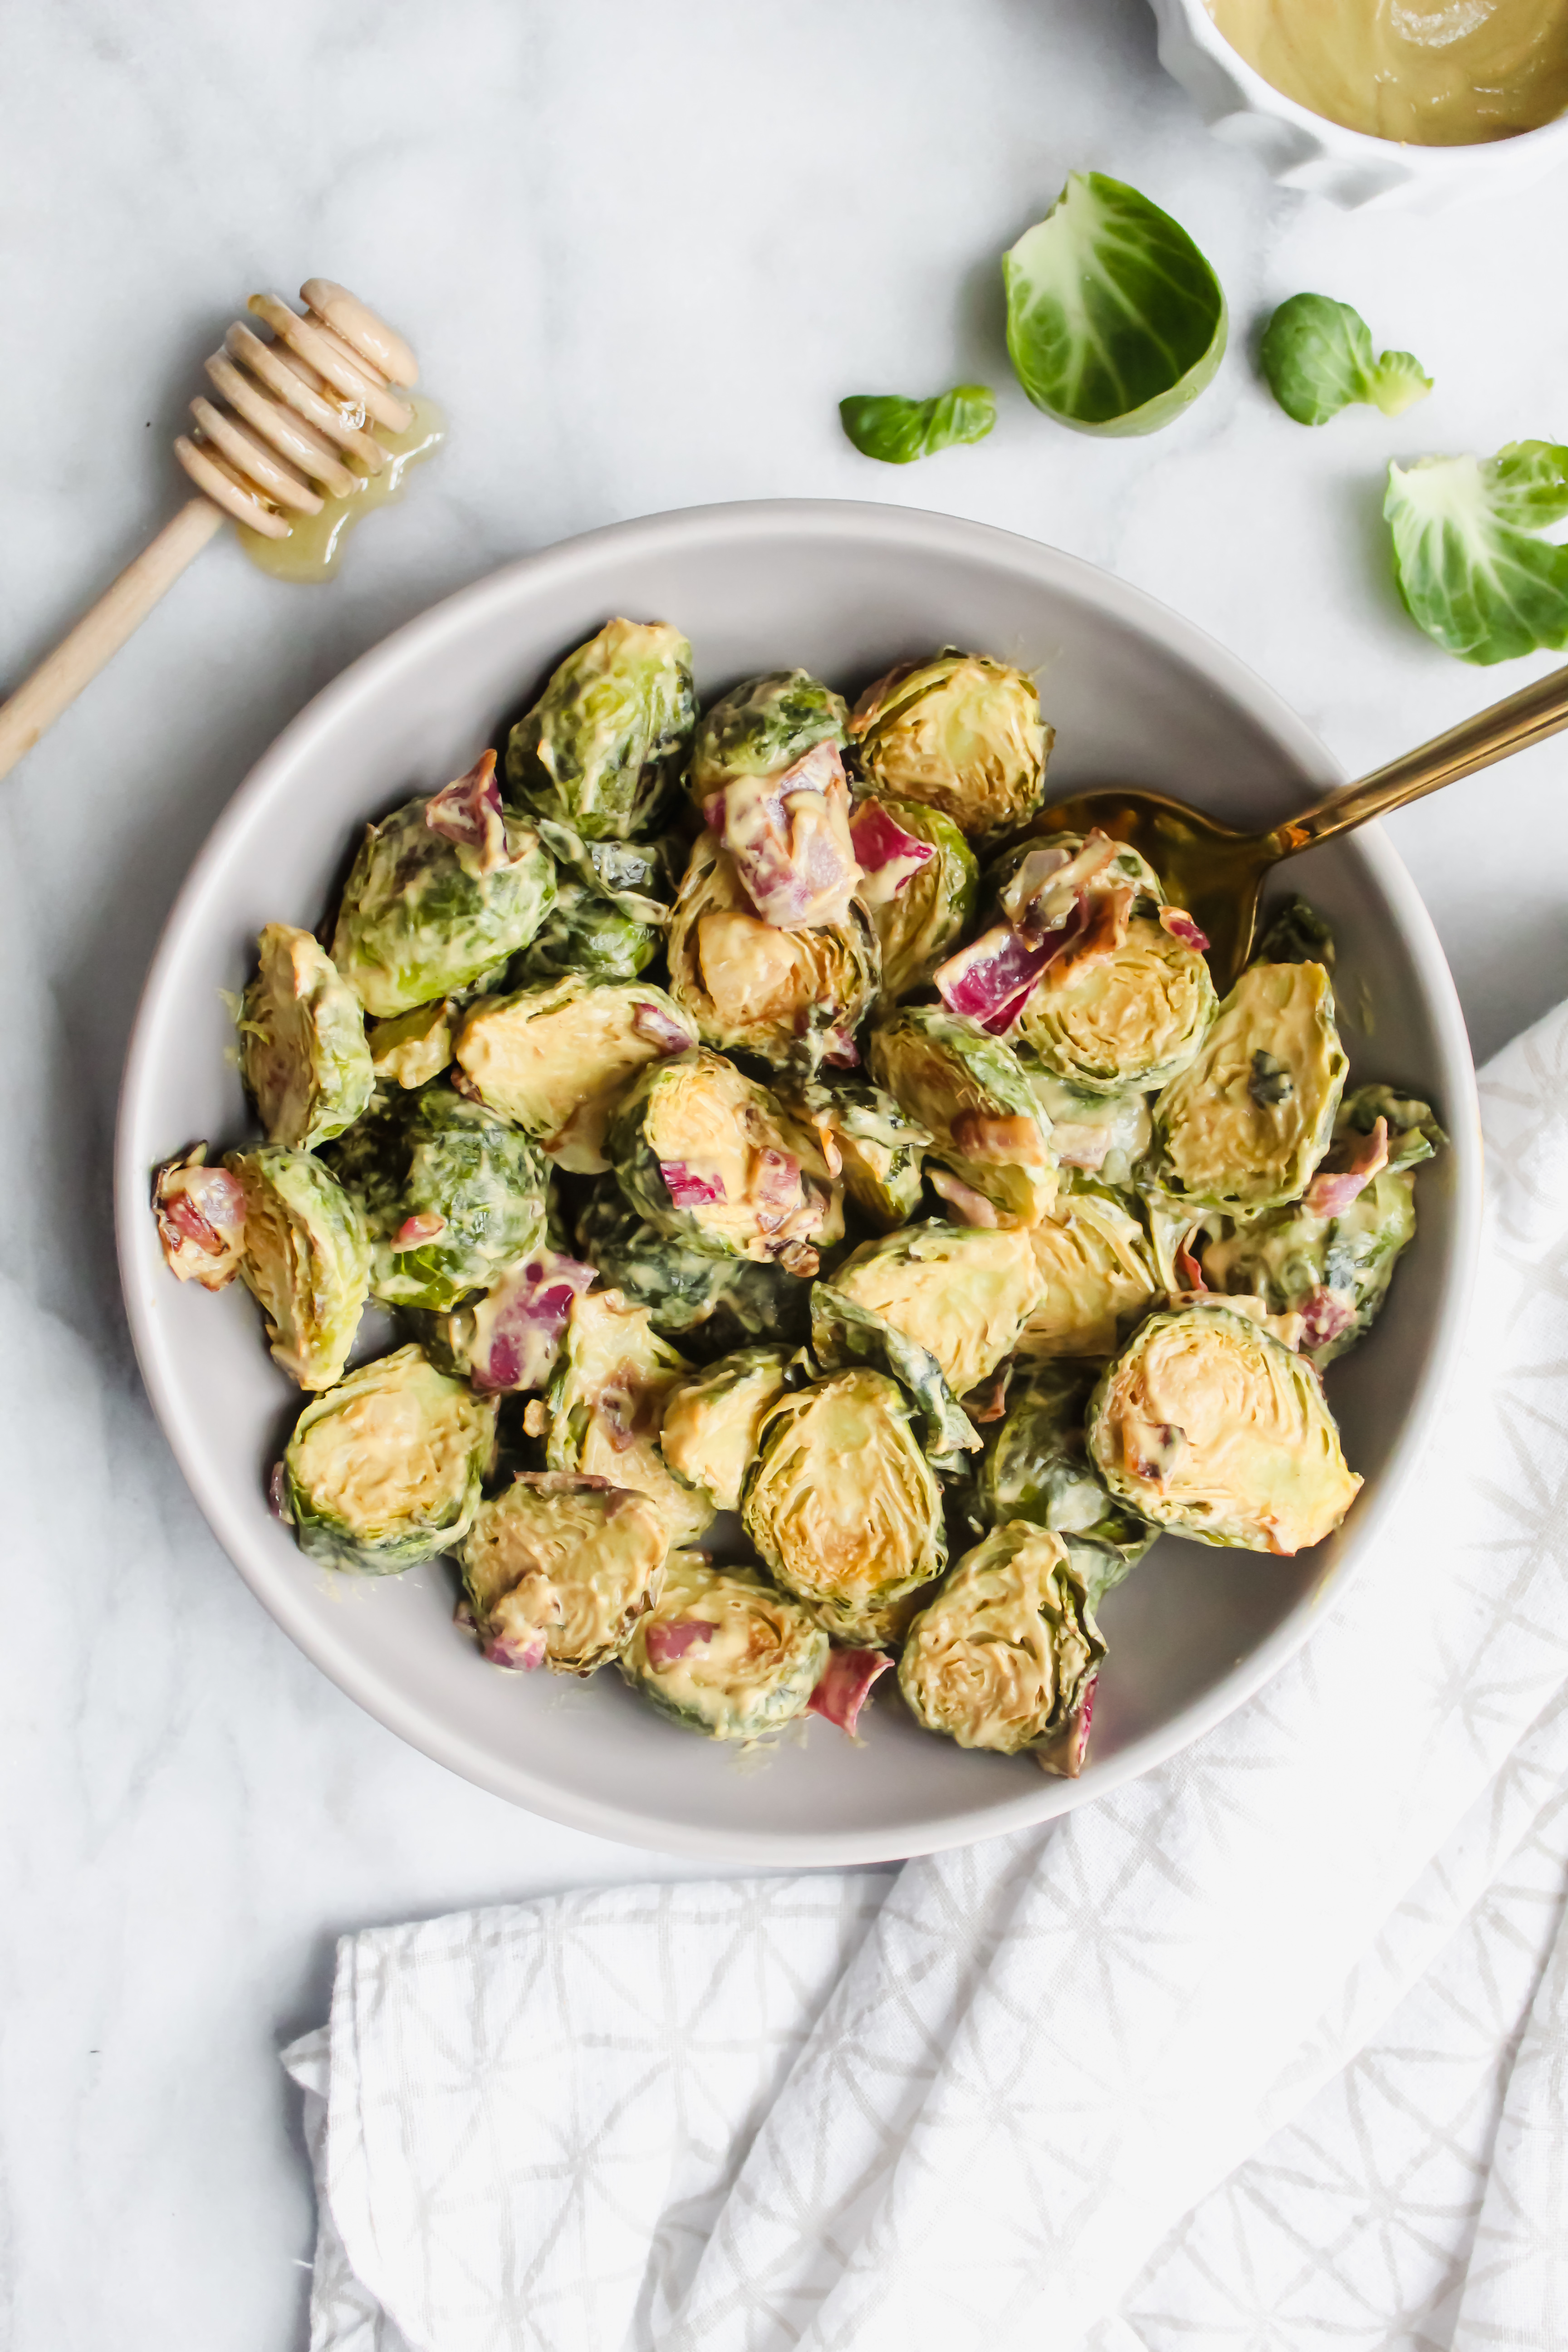 Honey Dijon Glazed Brussel Sprouts in a gray bowl with honey stick beside it